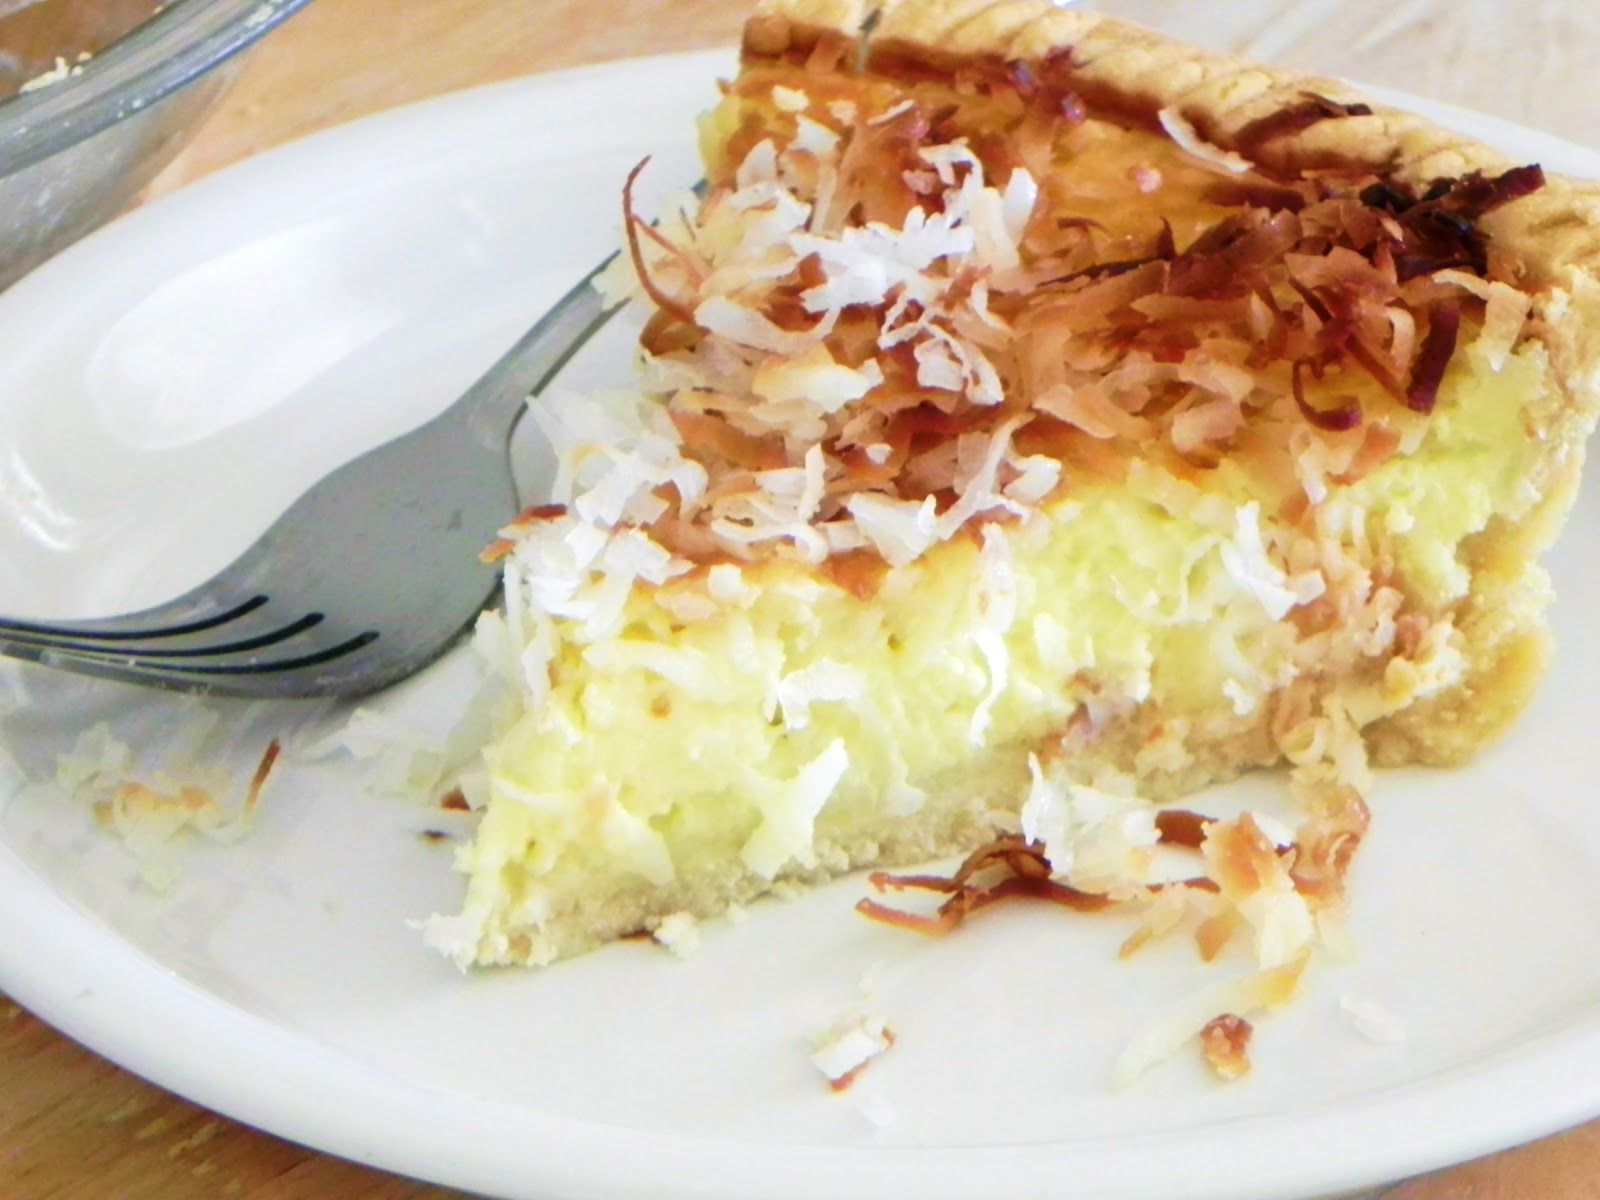 beyond foods: COCONUT CUSTARD PIE